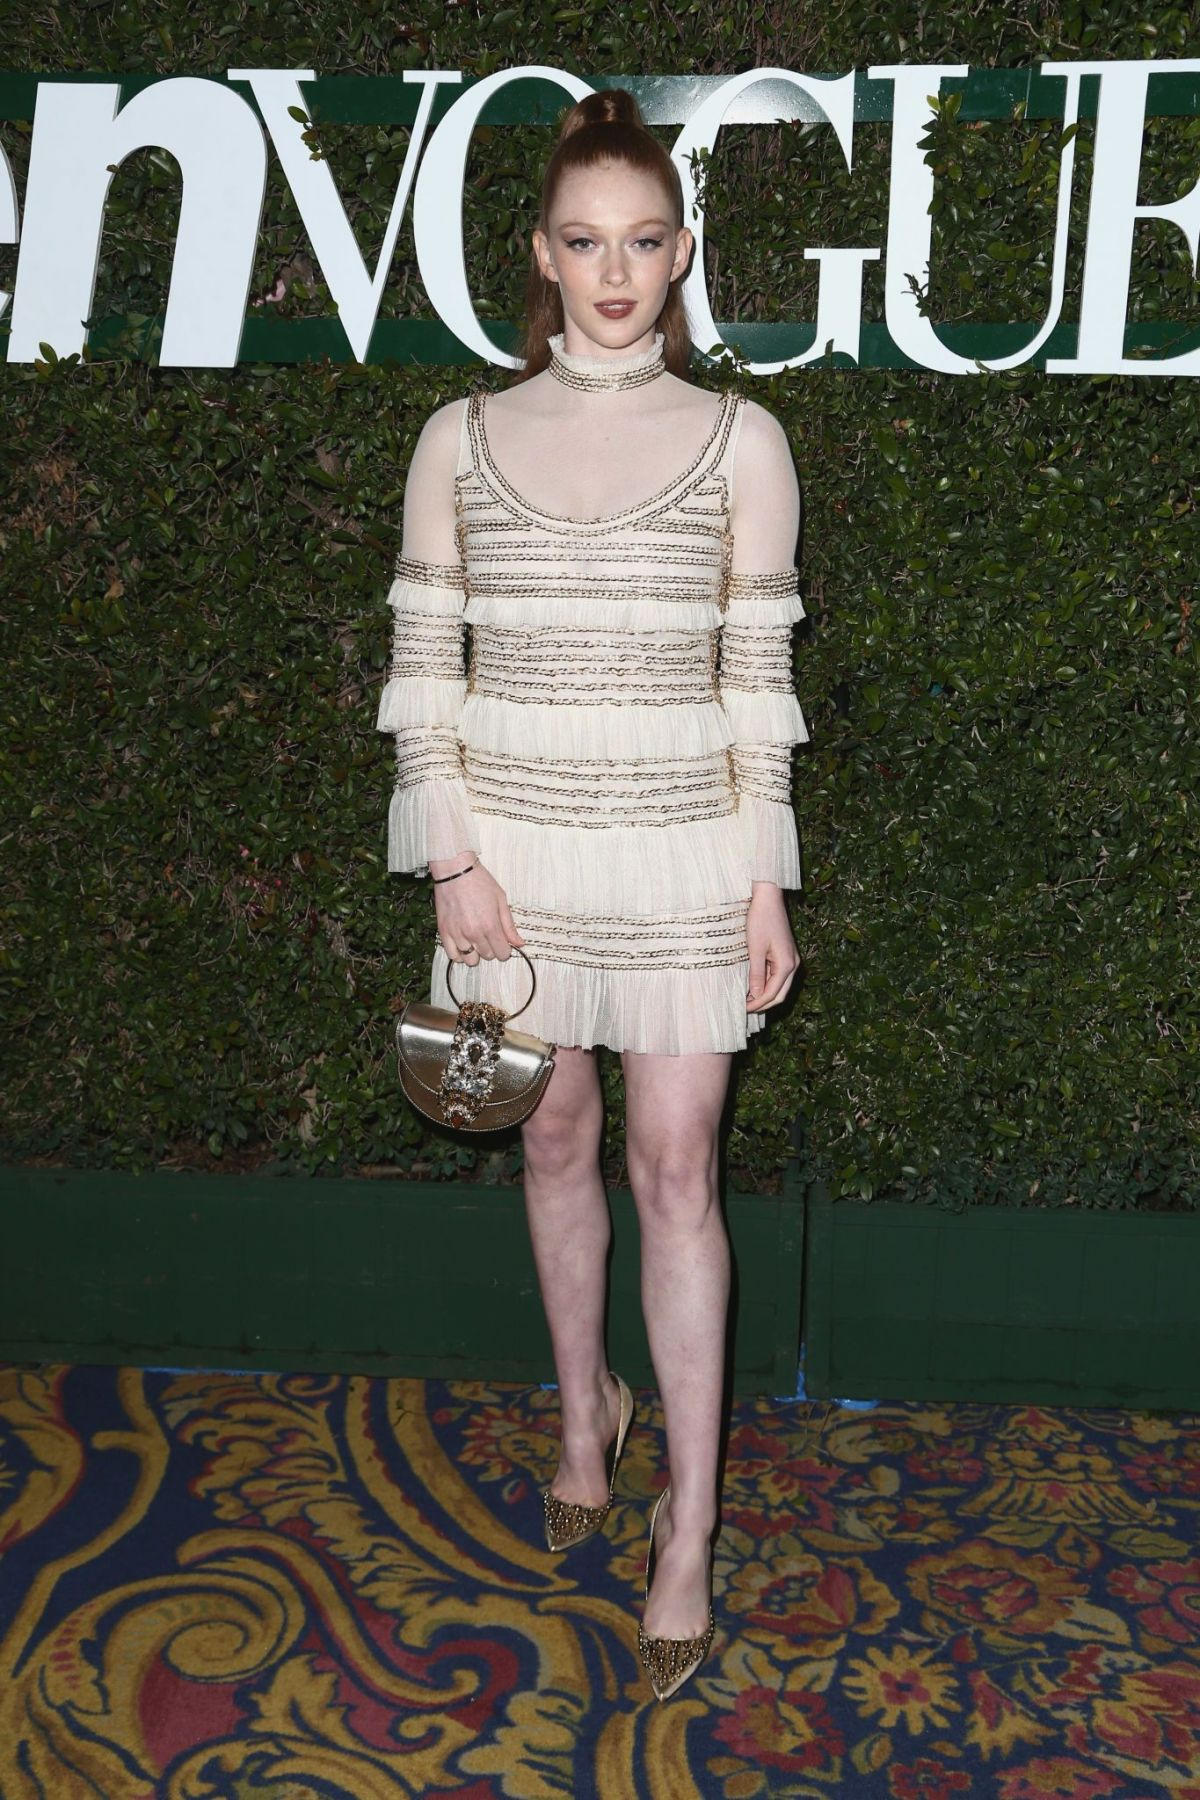 d1d75adb3c3e20 LARSEN THOMPSON at Teen Vogue Young Hollywood Party in Los Angeles  02 15 2019